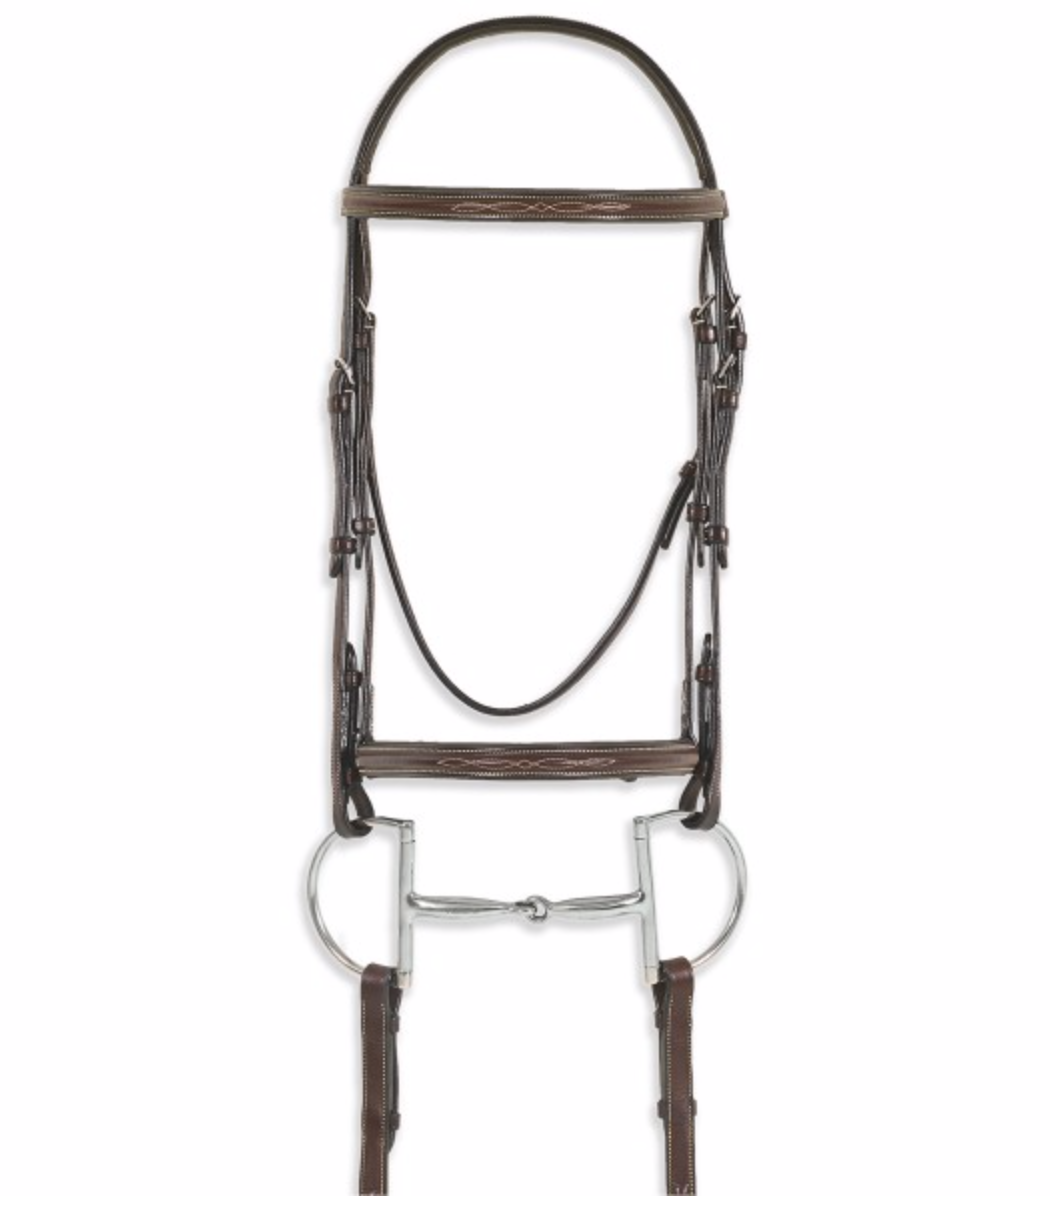 Pessoa PRO Fancy Stitched Raised Bridle - North Shore Saddlery